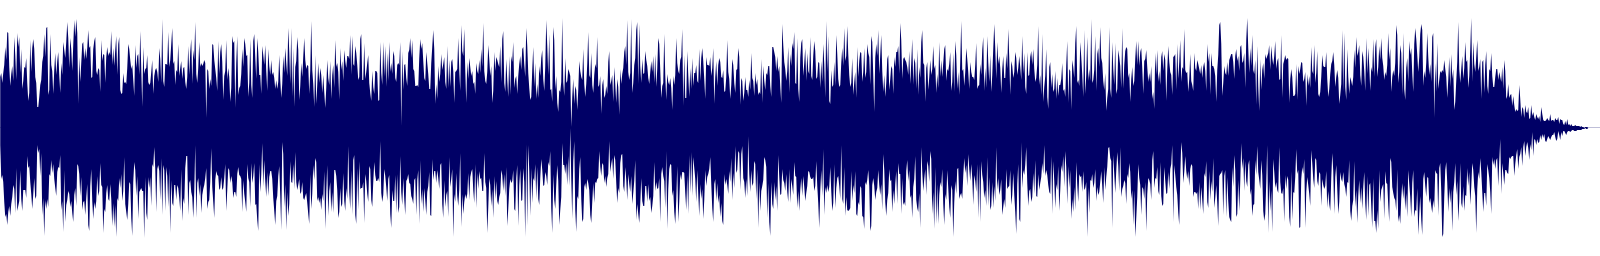 waveform of track #132381